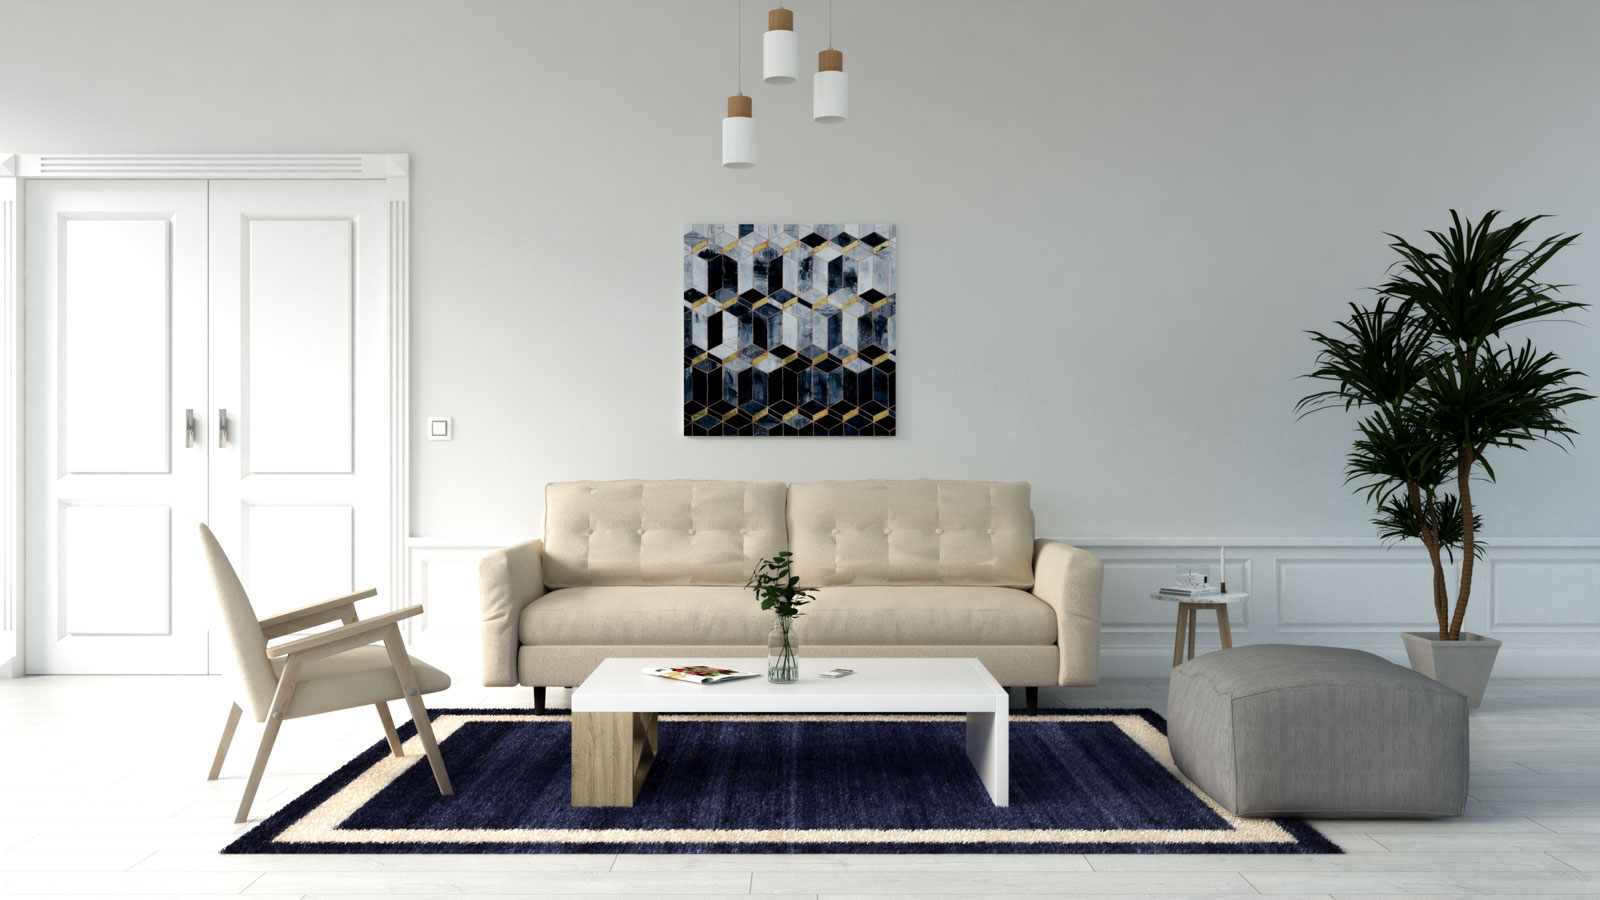 Blue and cream rug with beige couch